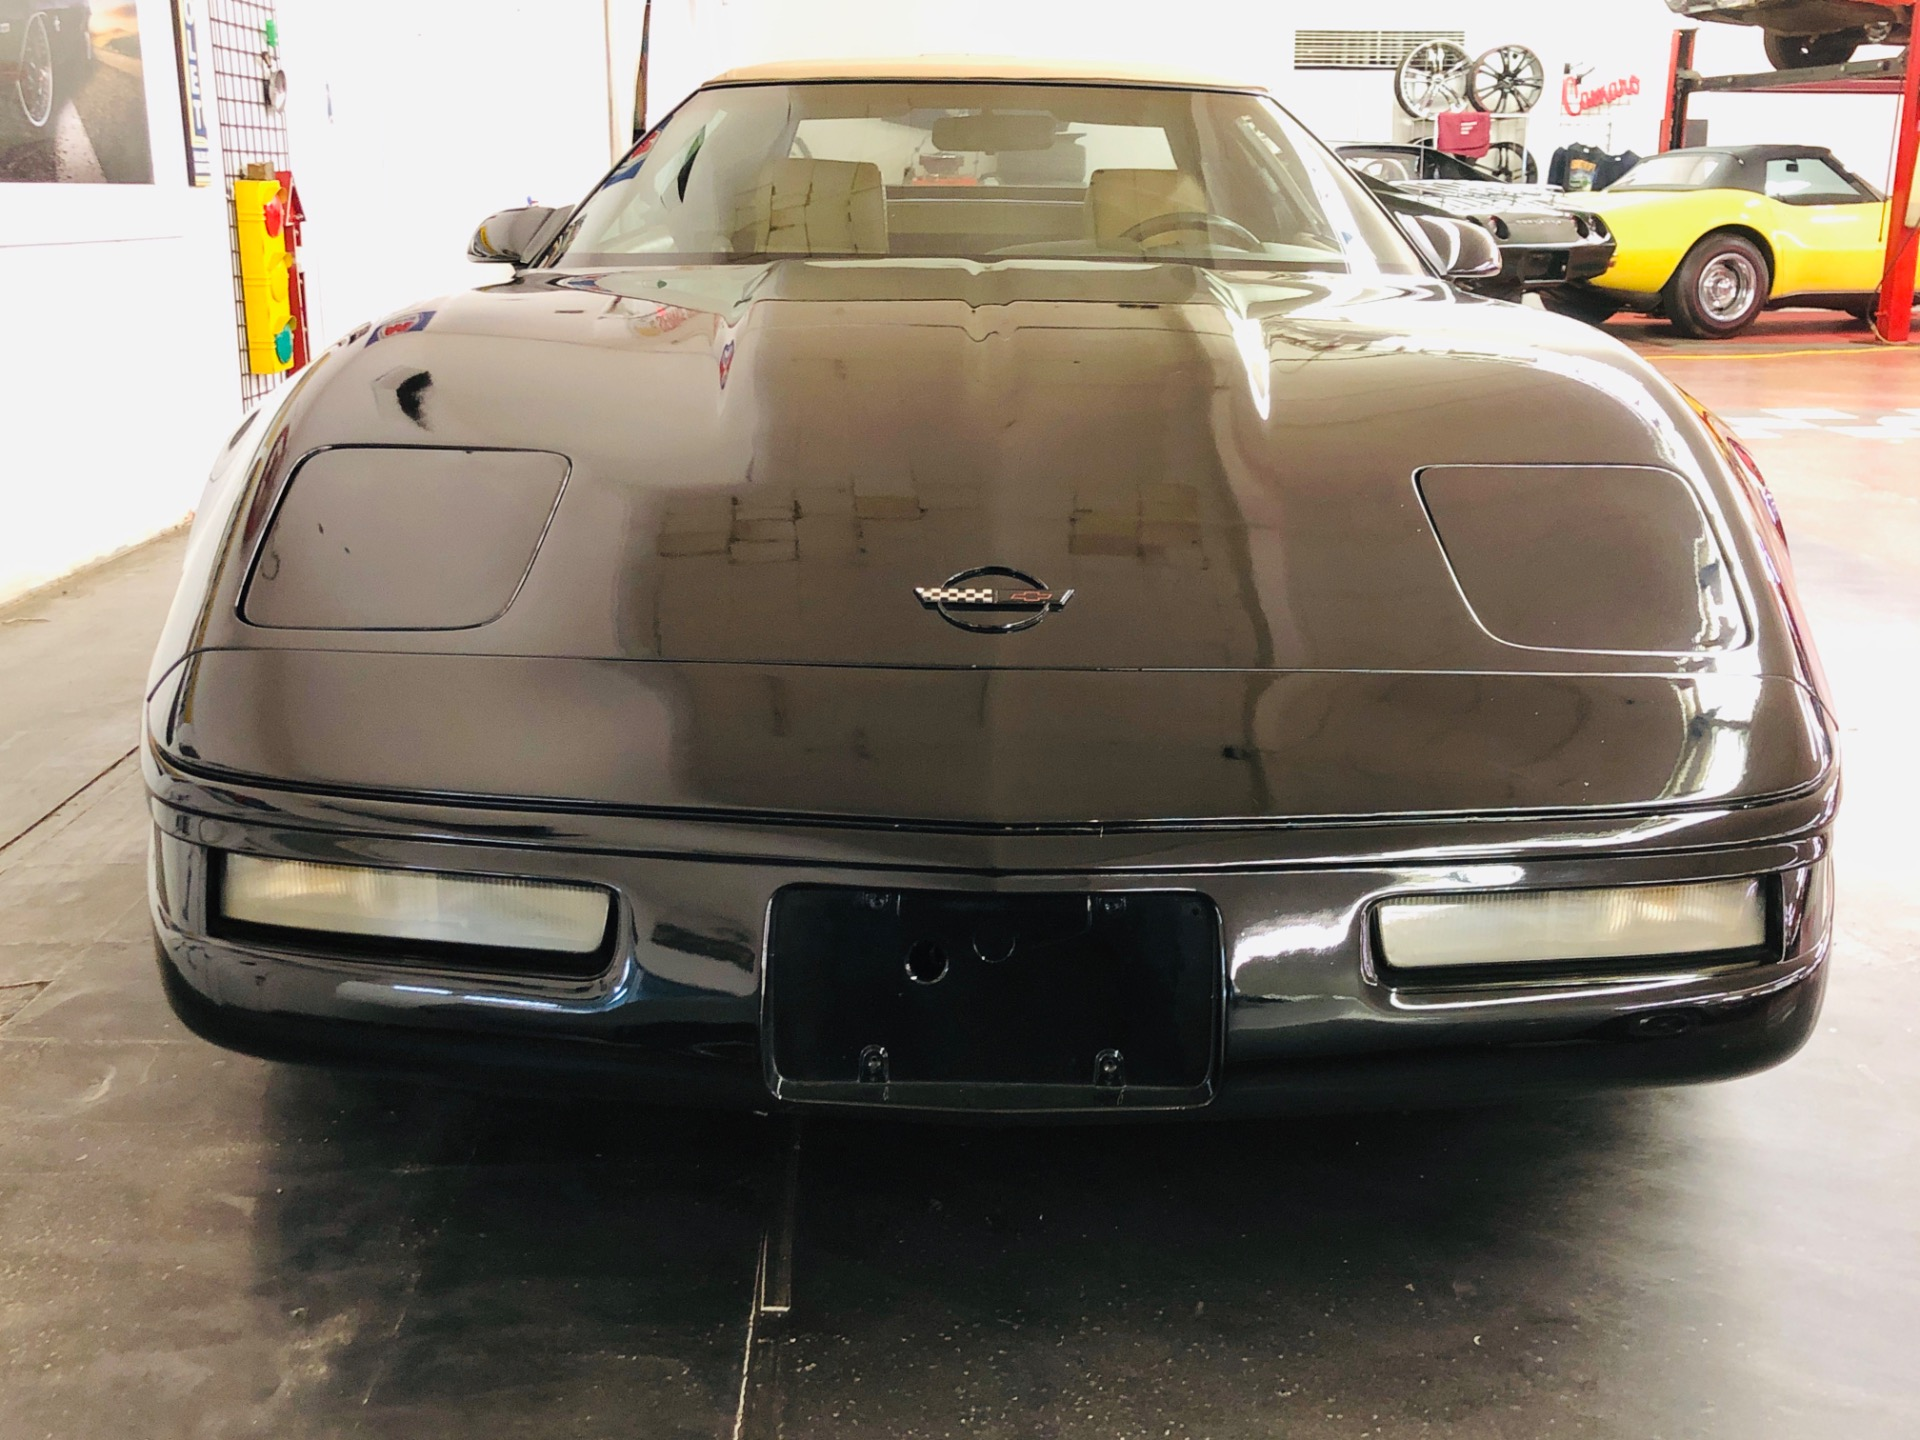 Used 1992 Chevrolet Corvette -CONVERTIBLE SUMMER FUN-AFFORDABLE MODERN CLASSIC-SEE VIDEO | Mundelein, IL